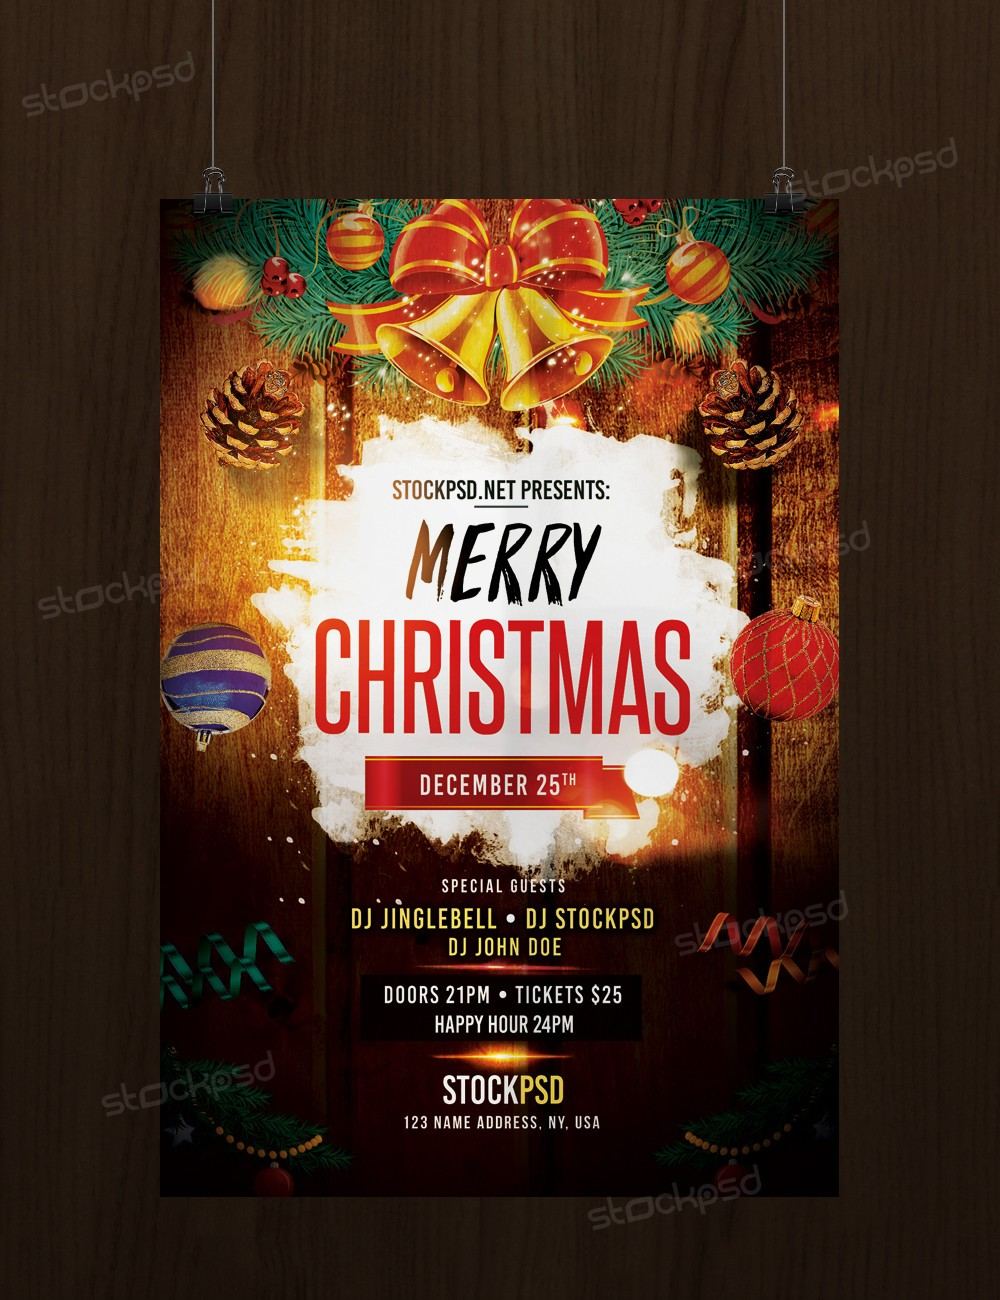 merry christmas psd flyer template stockpsd net